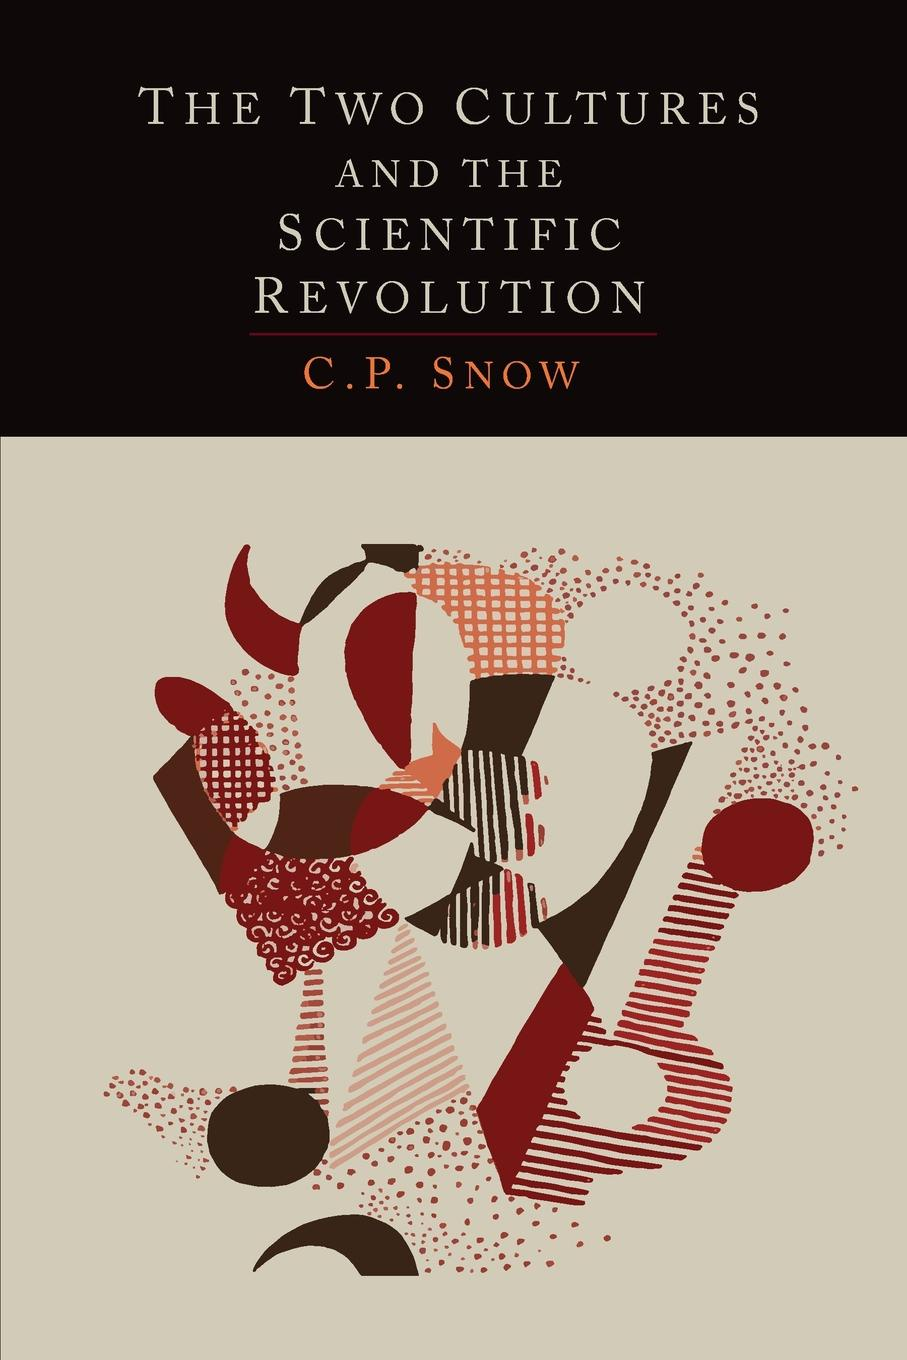 C. P. Snow The Two Cultures and the Scientific Revolution 2016 the new recommendation of the two sides of the two sides of the pineapple service women s clothing split body and european